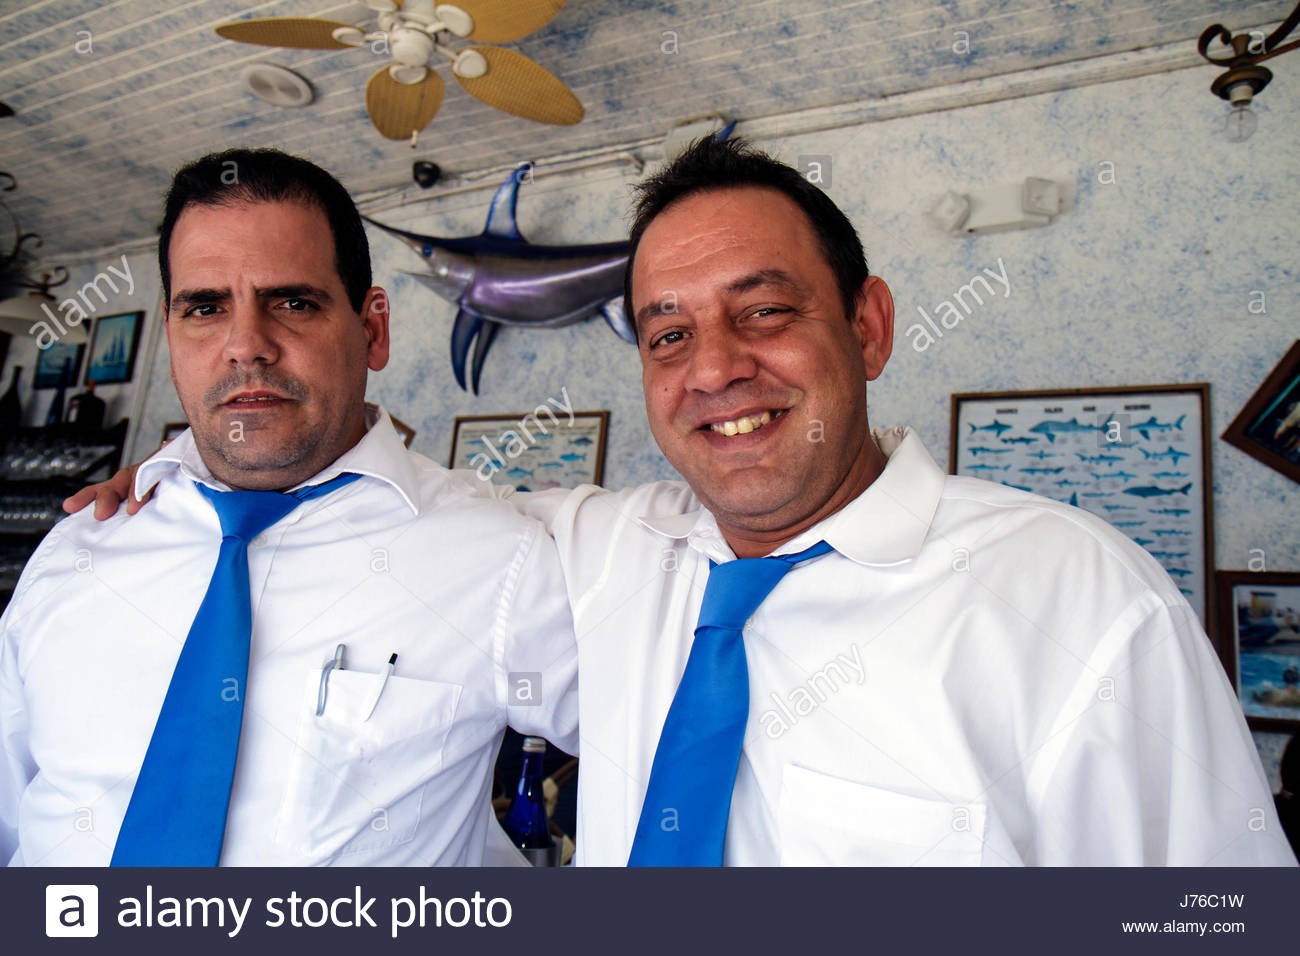 Miami Florida Casablanca Seafood Bar and & Grill restaurant Hispanic man men waiter co-workers job - Stock Image